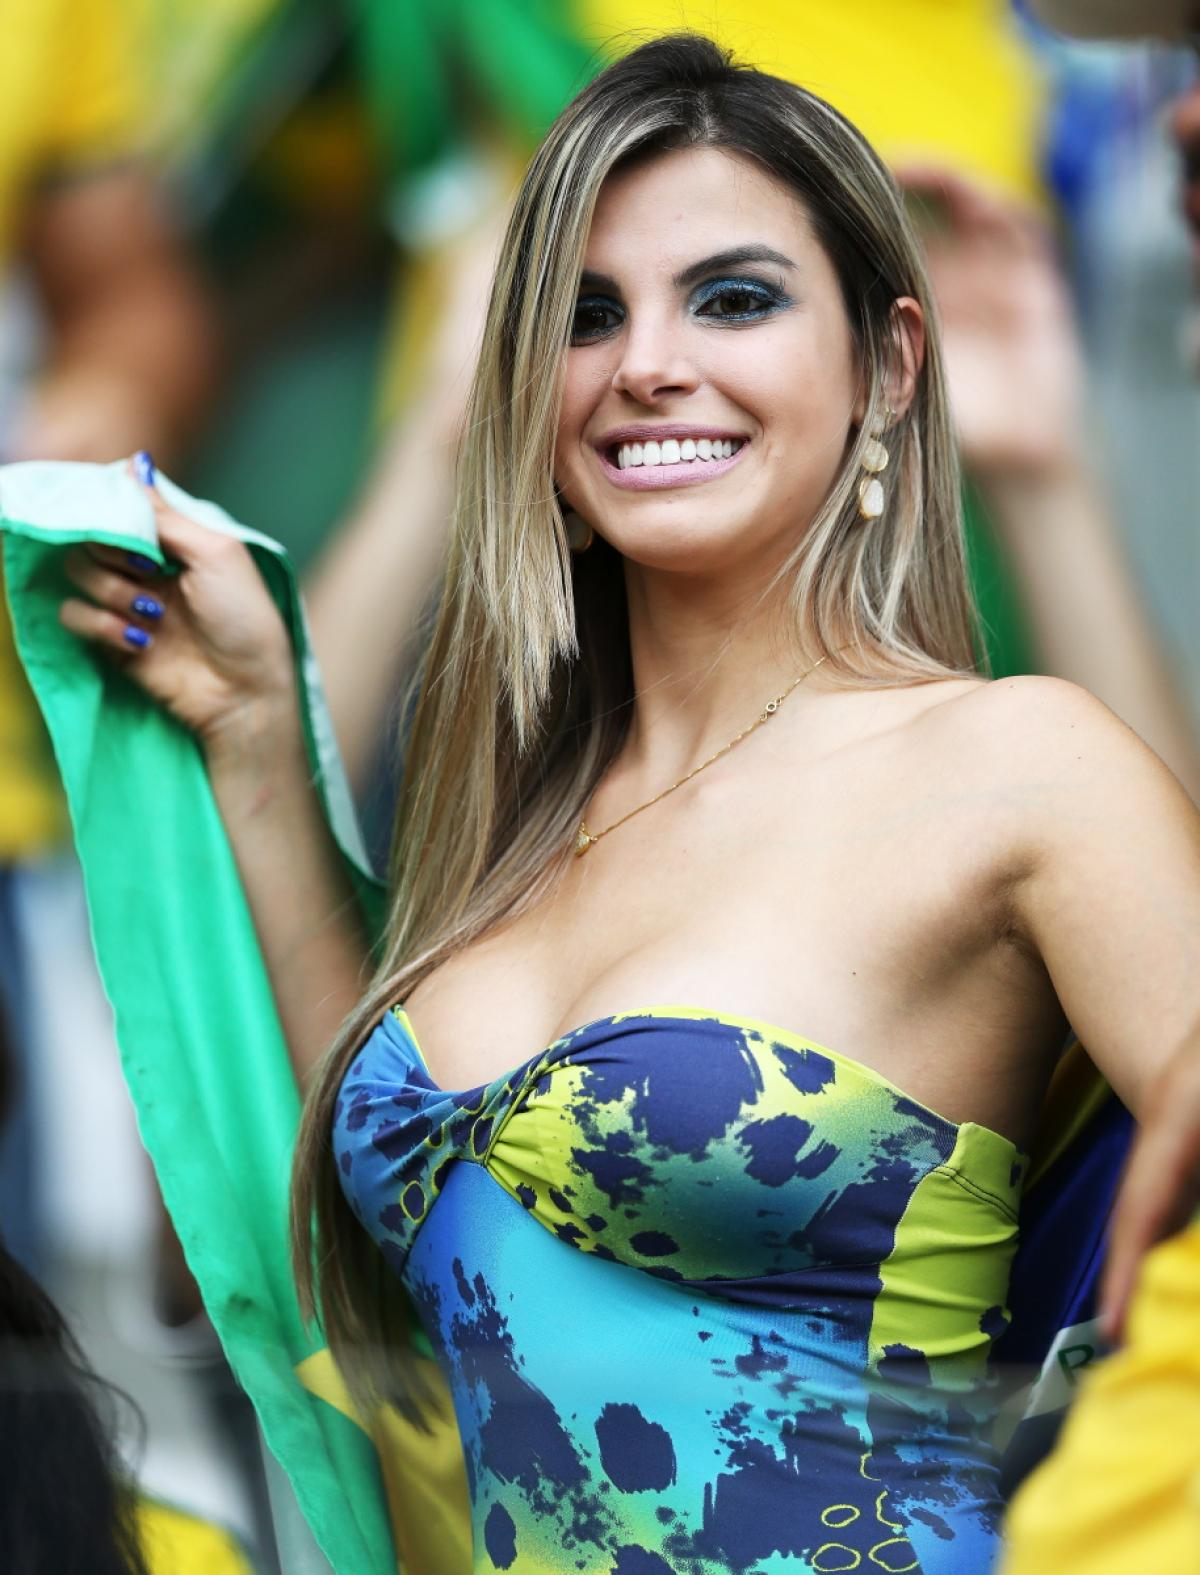 1 hot brazil fan 6 - hottest female fans 2014 world cup